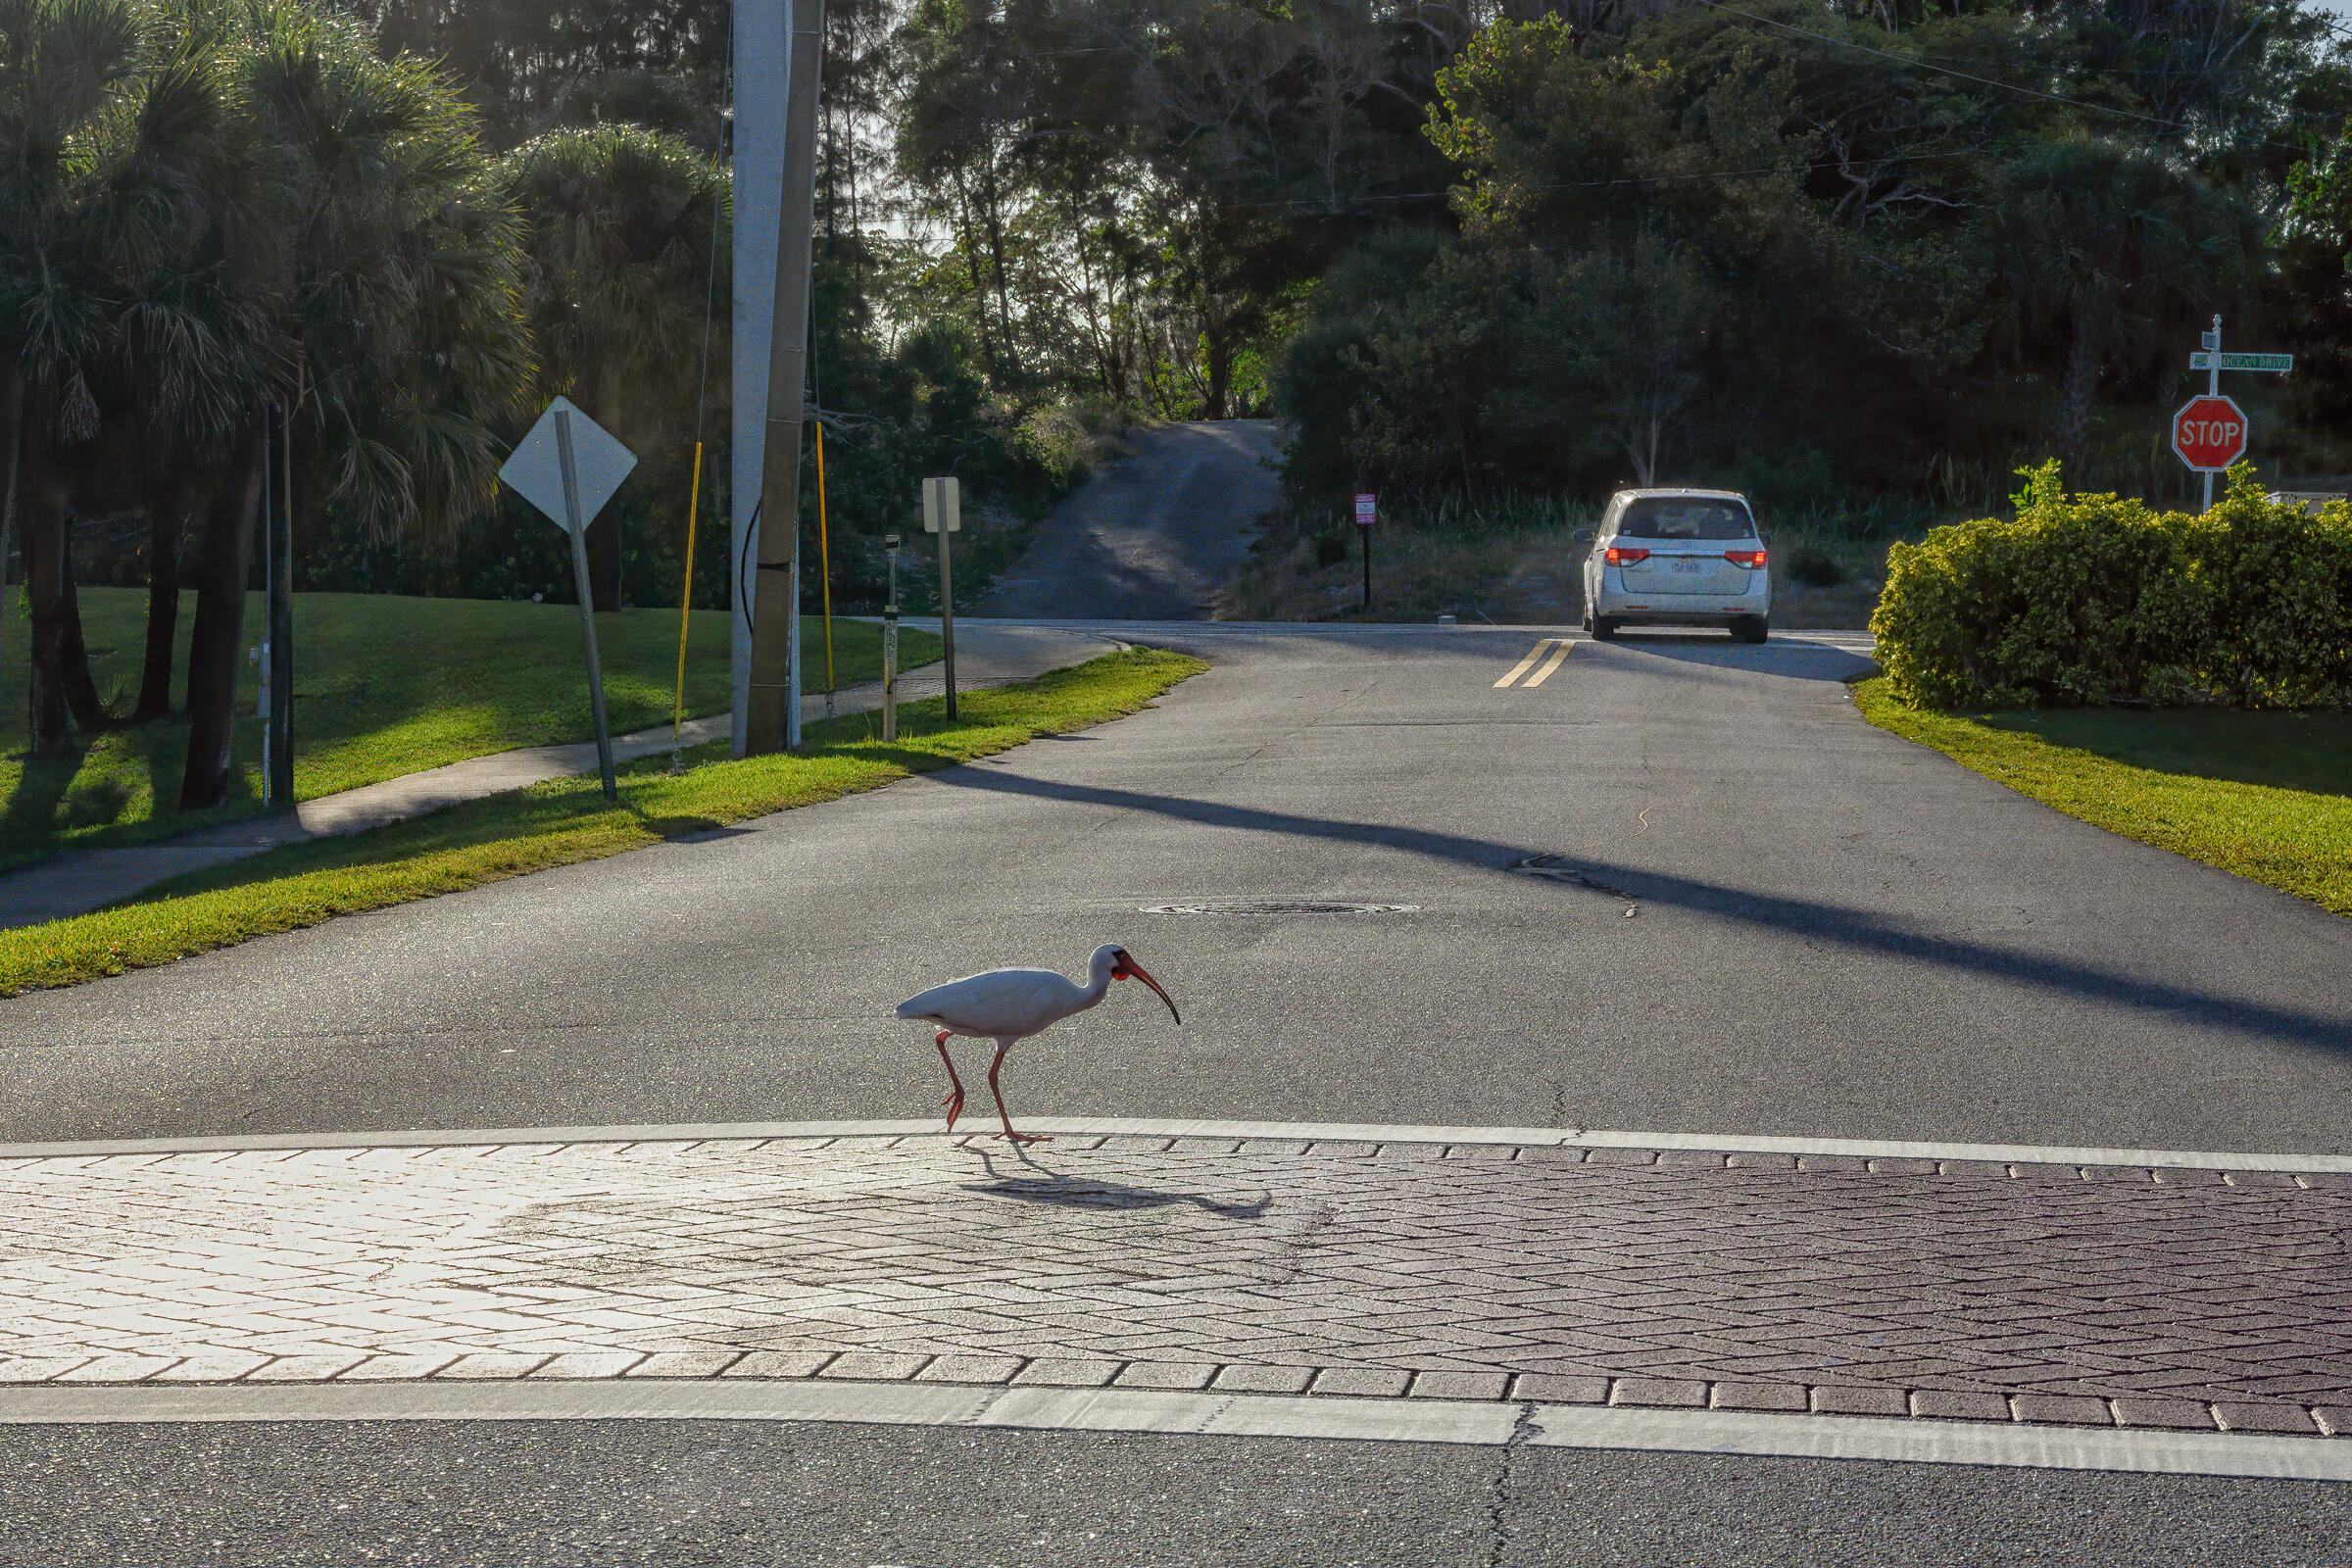 A White Ibis, with its long red beak outstretched, crosses a cross walk in the middle of a street. A white car with its rear lights visible is driving in the background.